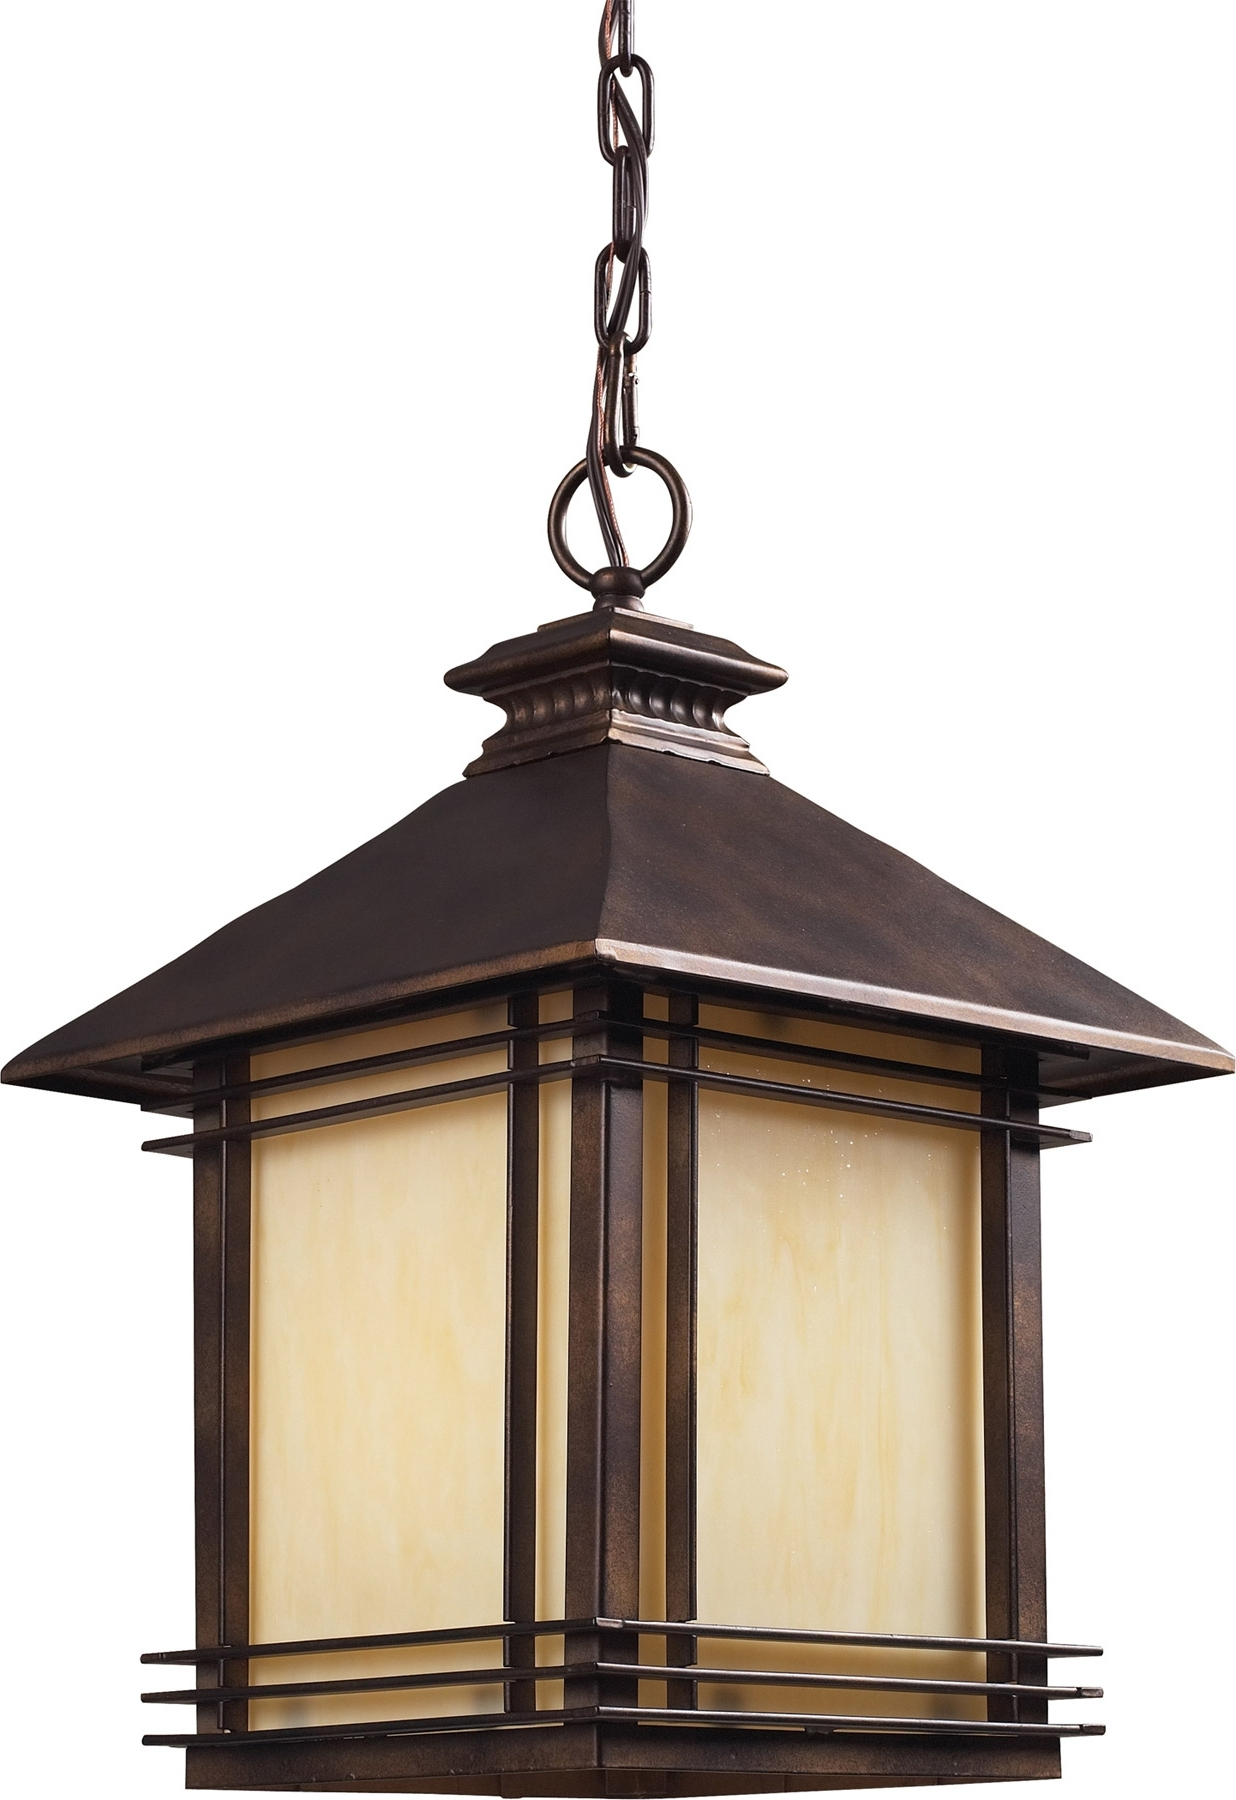 Lighting 42103/1 Blackwell Outdoor Hanging Lantern Intended For Most Current Solar Powered Outdoor Hanging Lanterns (View 4 of 20)